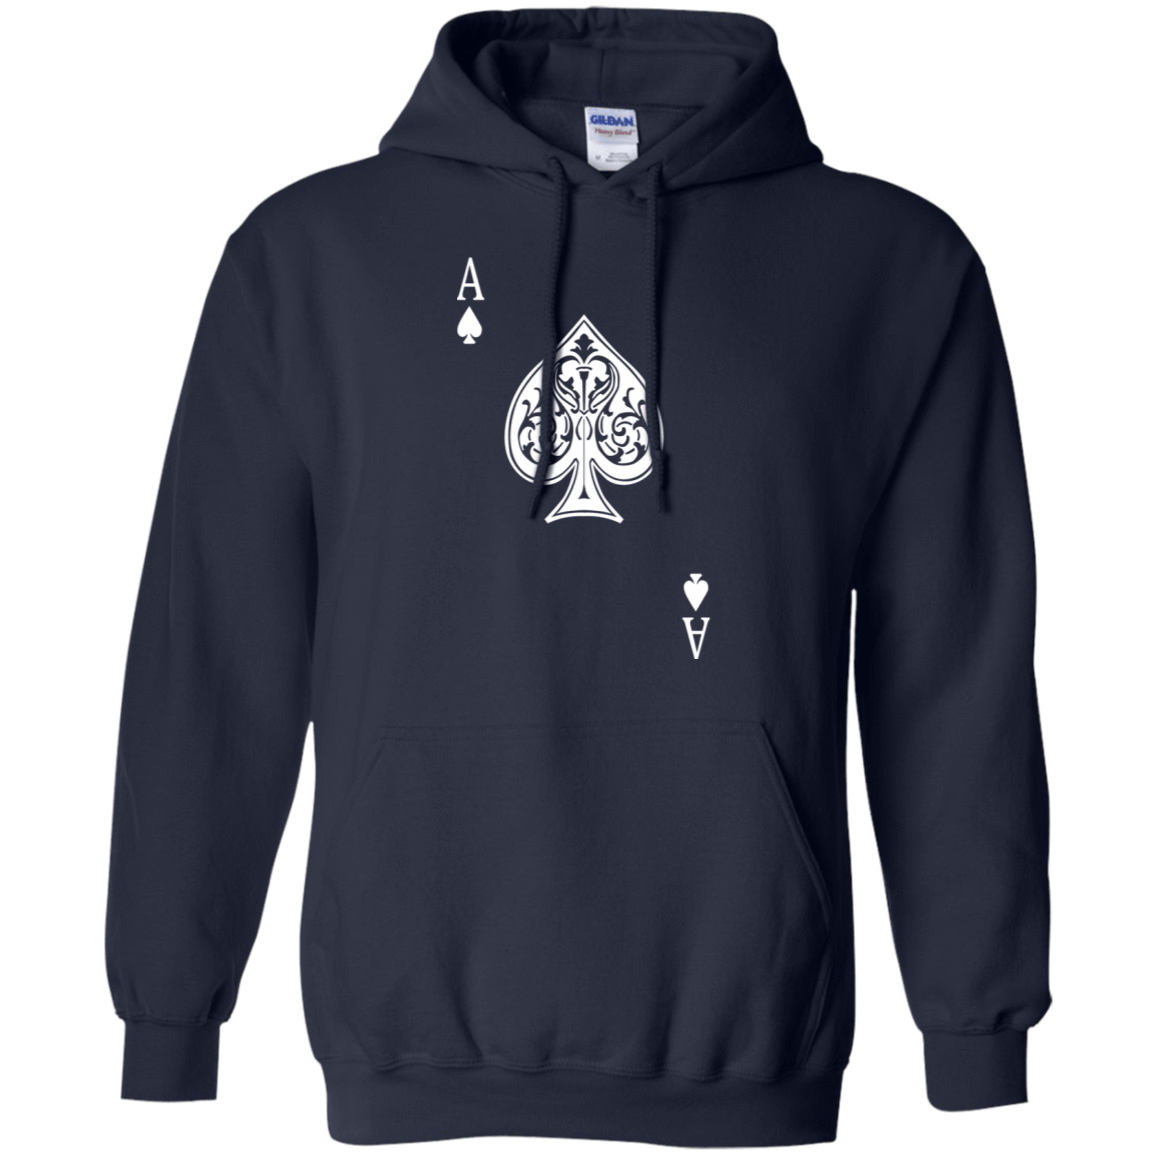 Ace of Spades 541-4742-72744327-23135 - Tee Ript